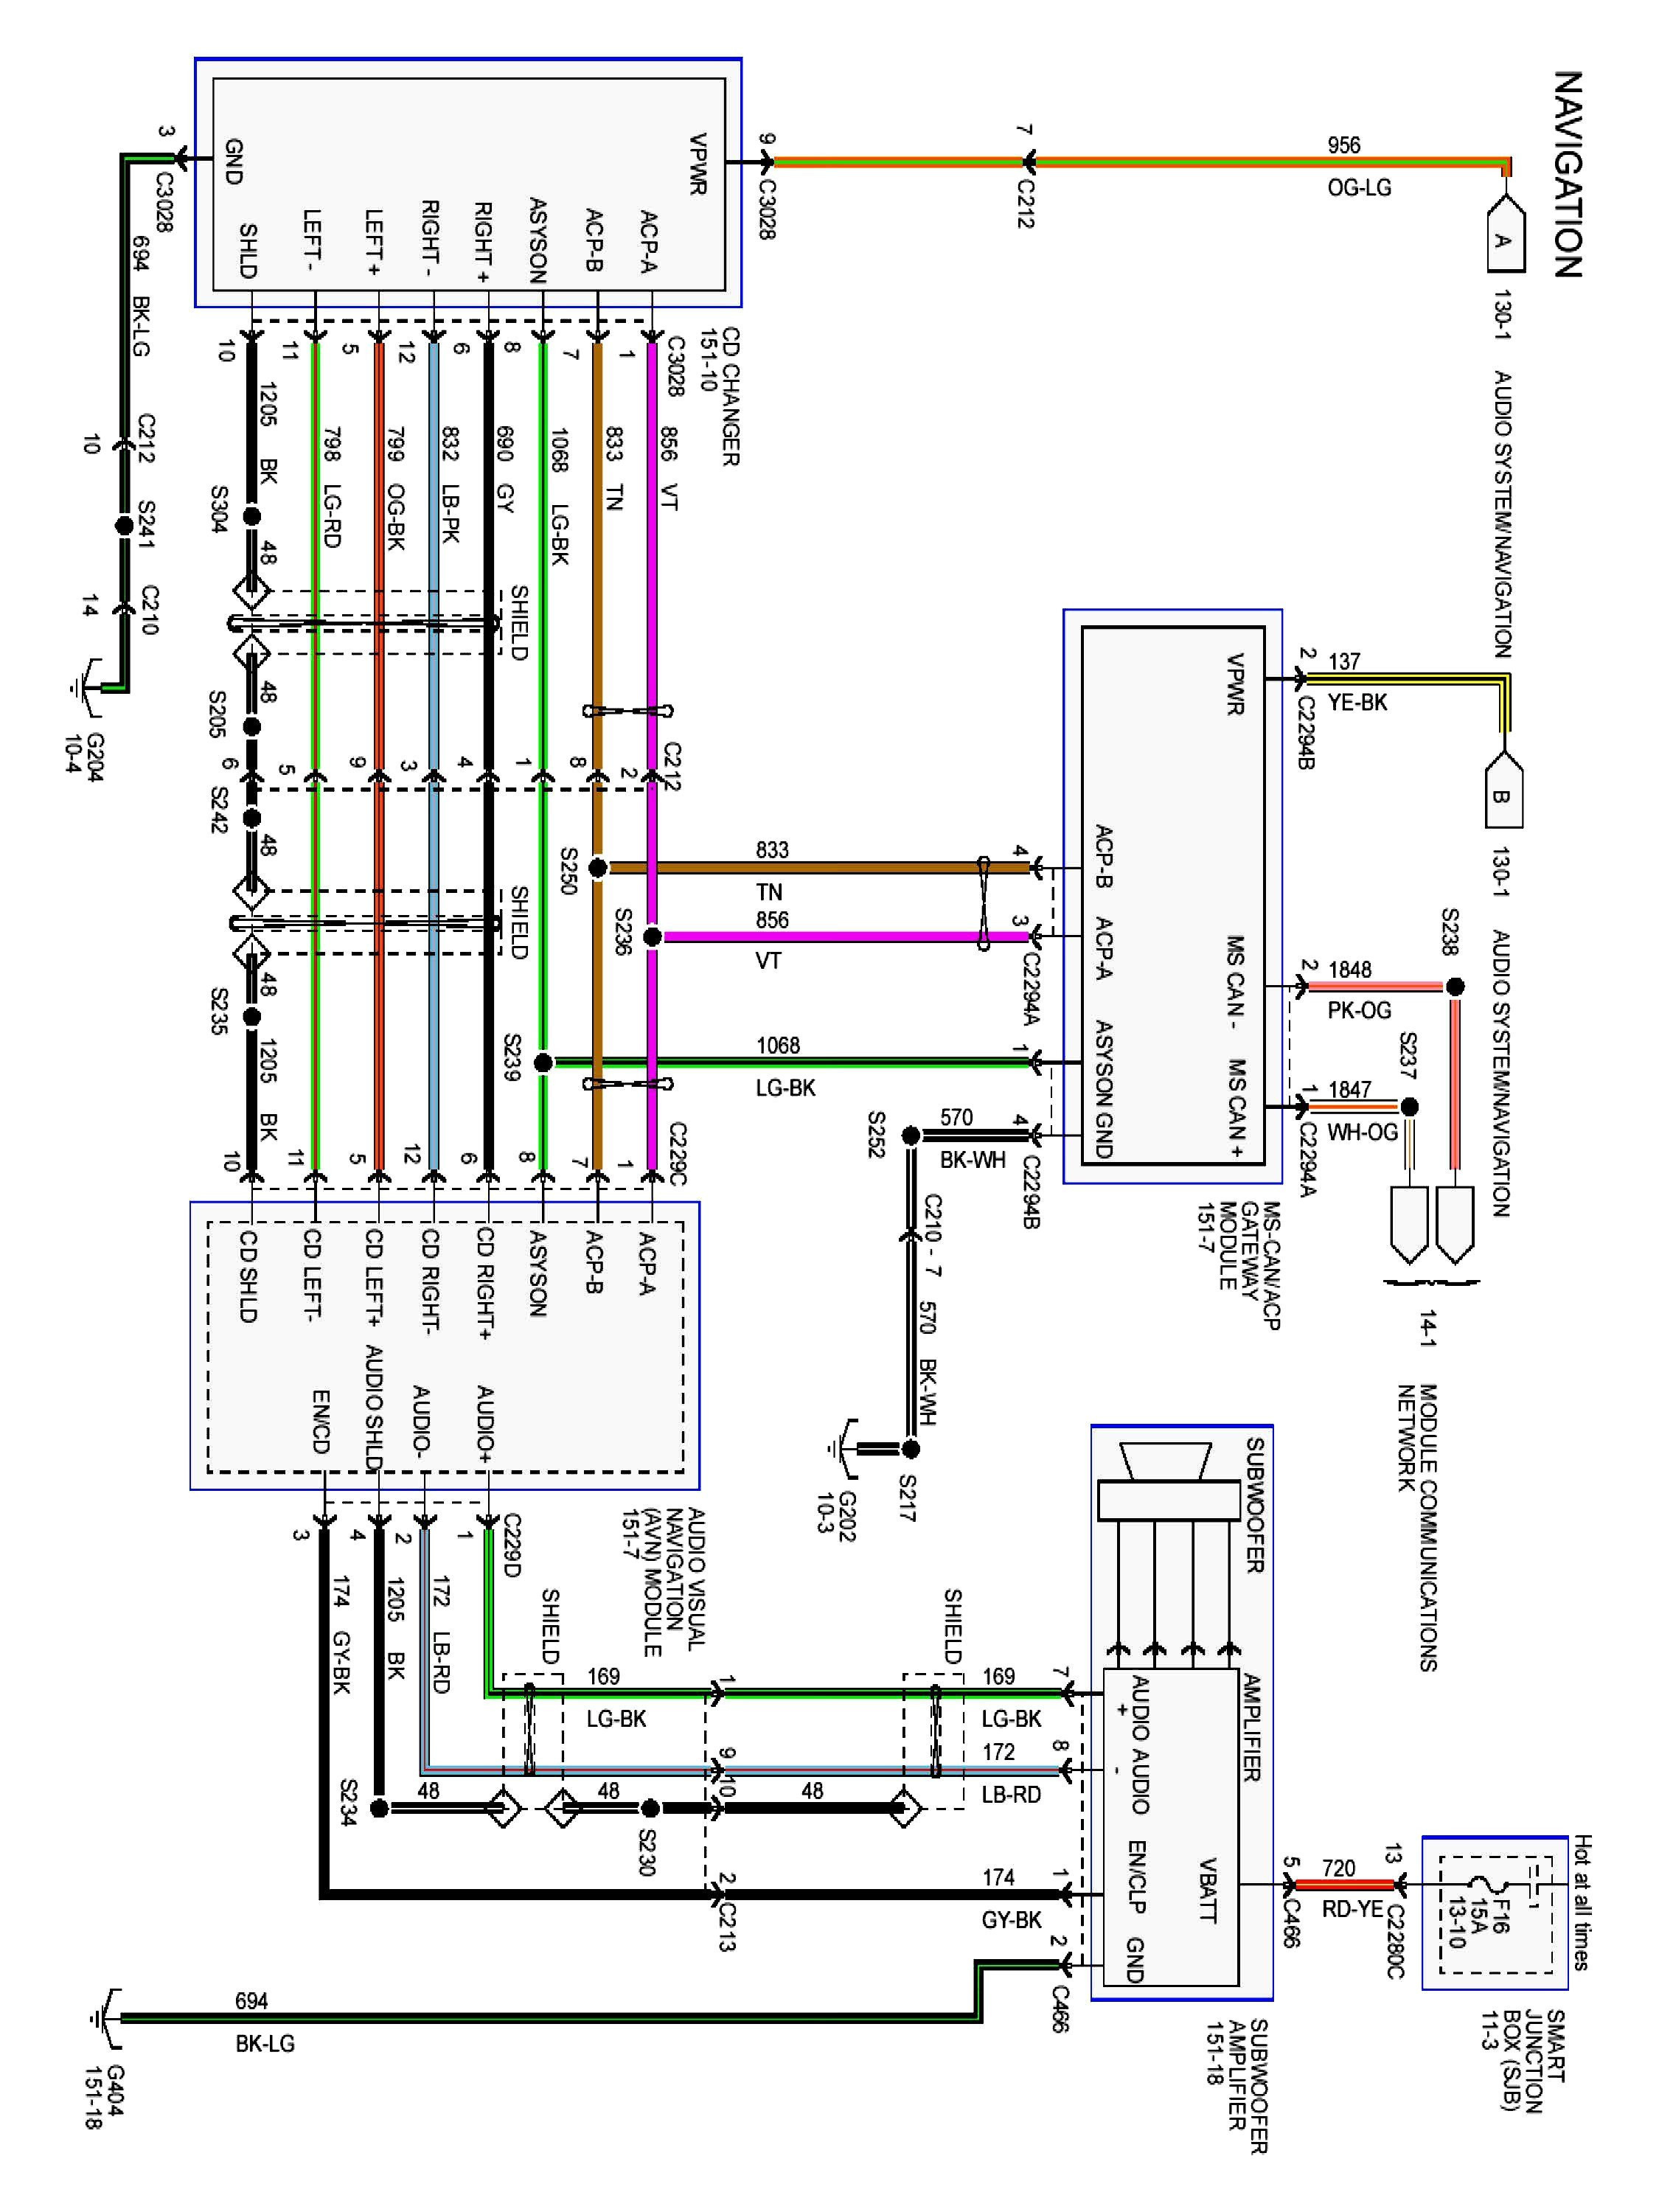 Ford Escape Wiring Harness Diagram - Wiring Diagrams Hubs - Jvc Wiring Diagram